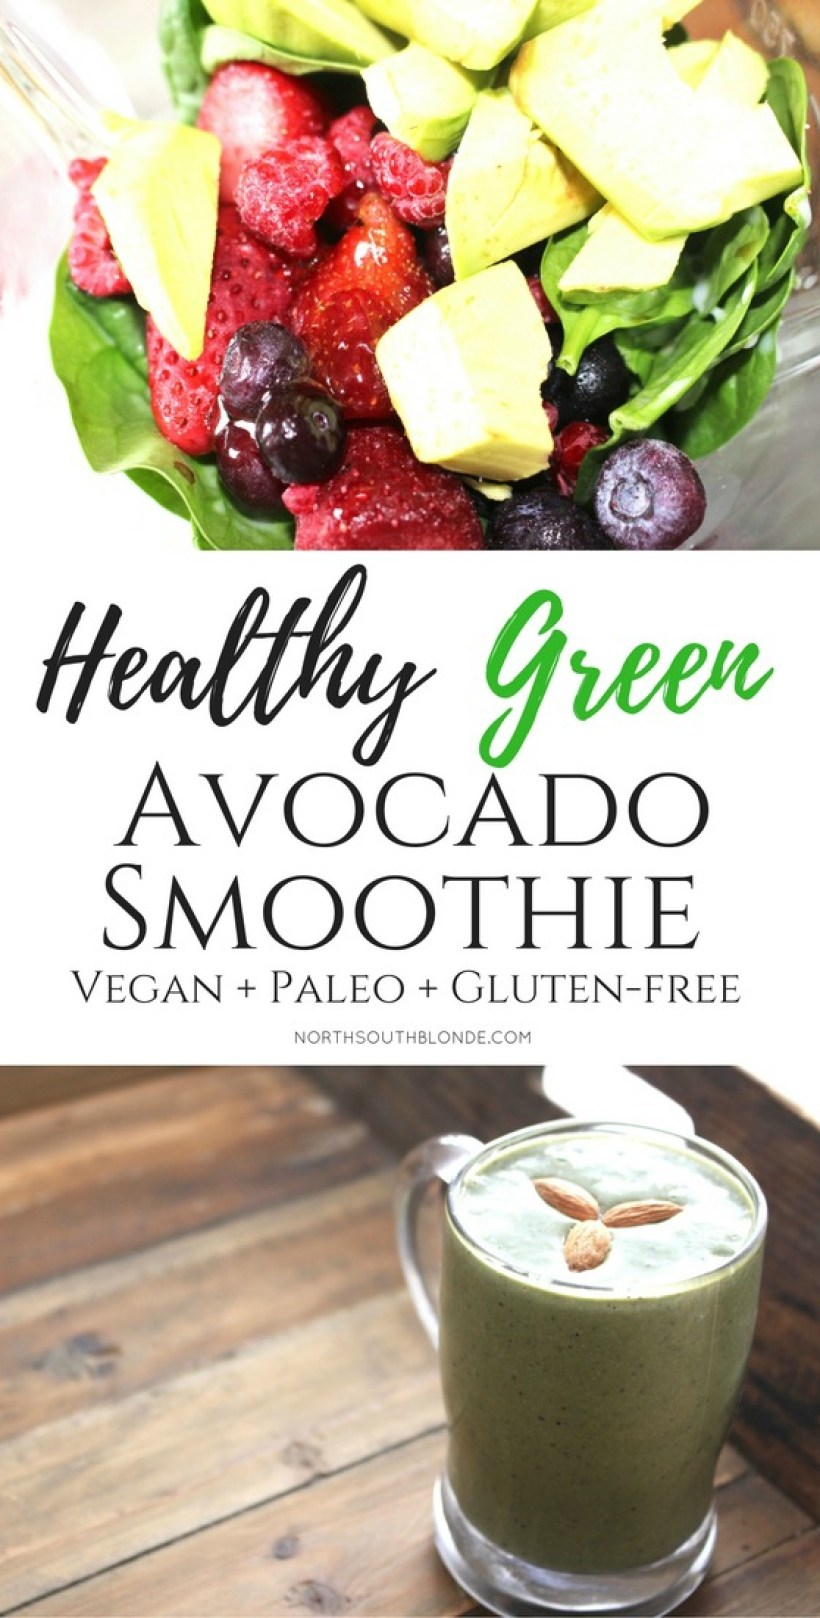 Healthy Green Avocado Smoothie (Vegan, Paleo, Gluten-free)